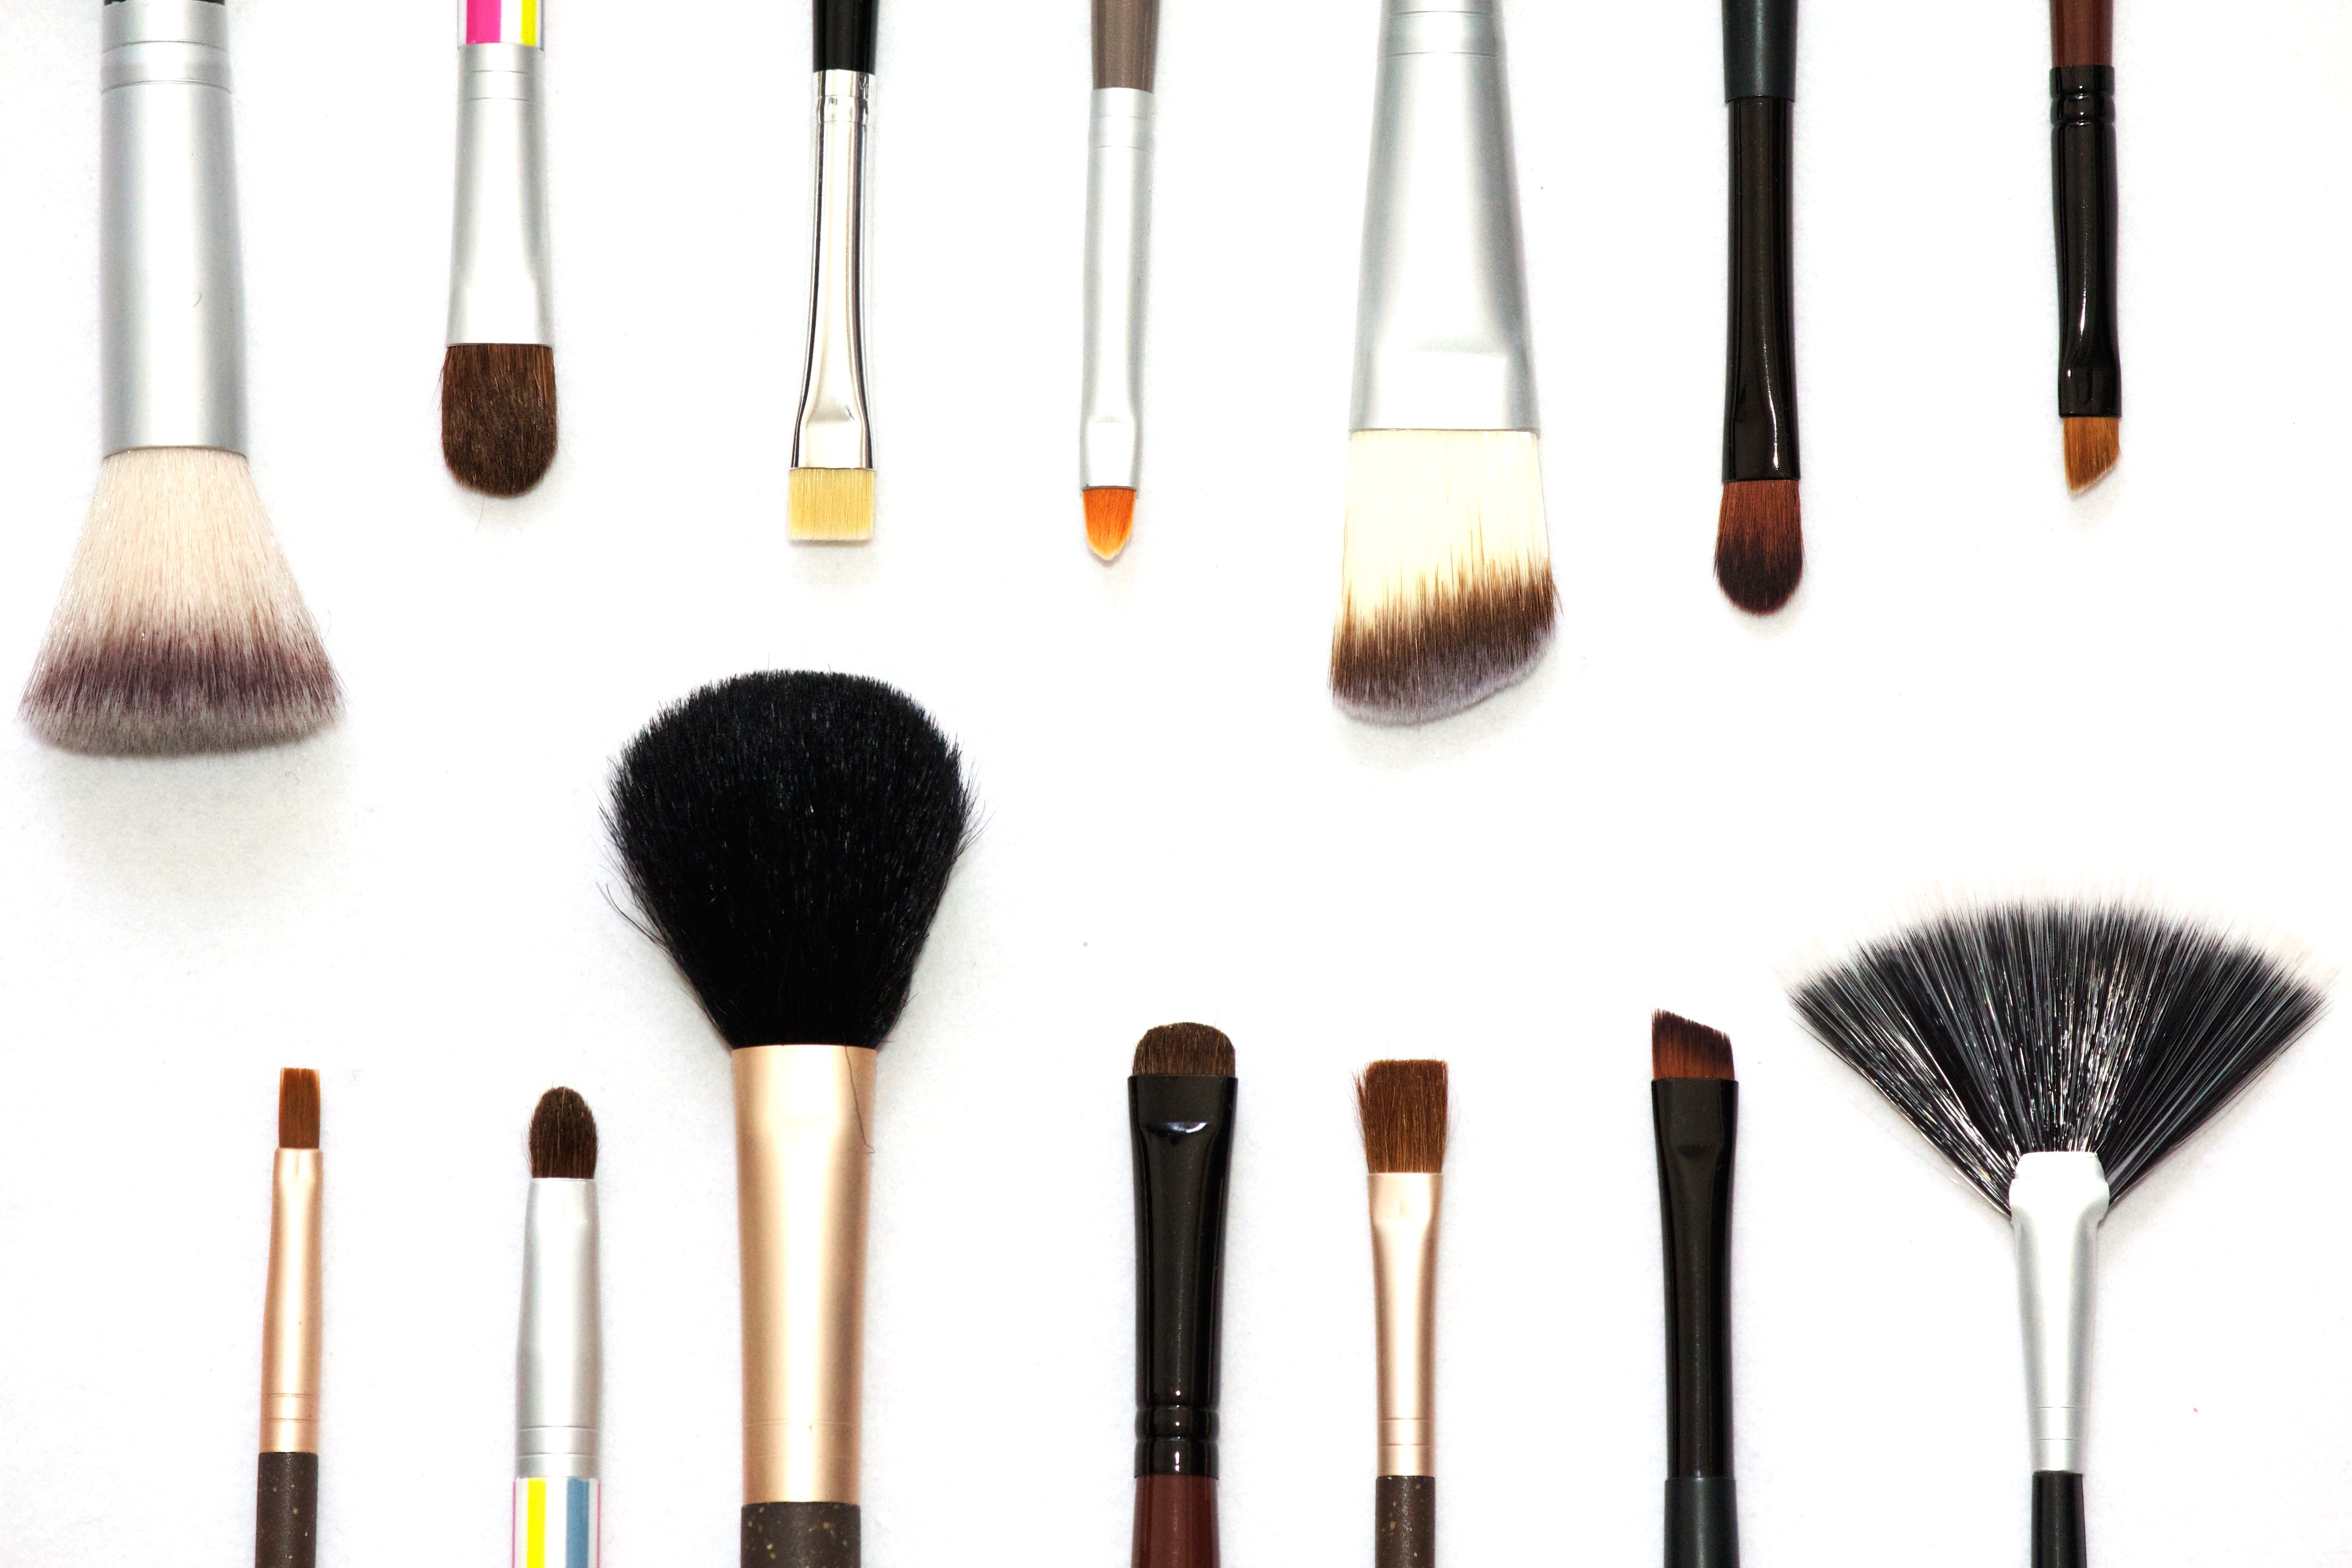 Make up brushes for different purposes